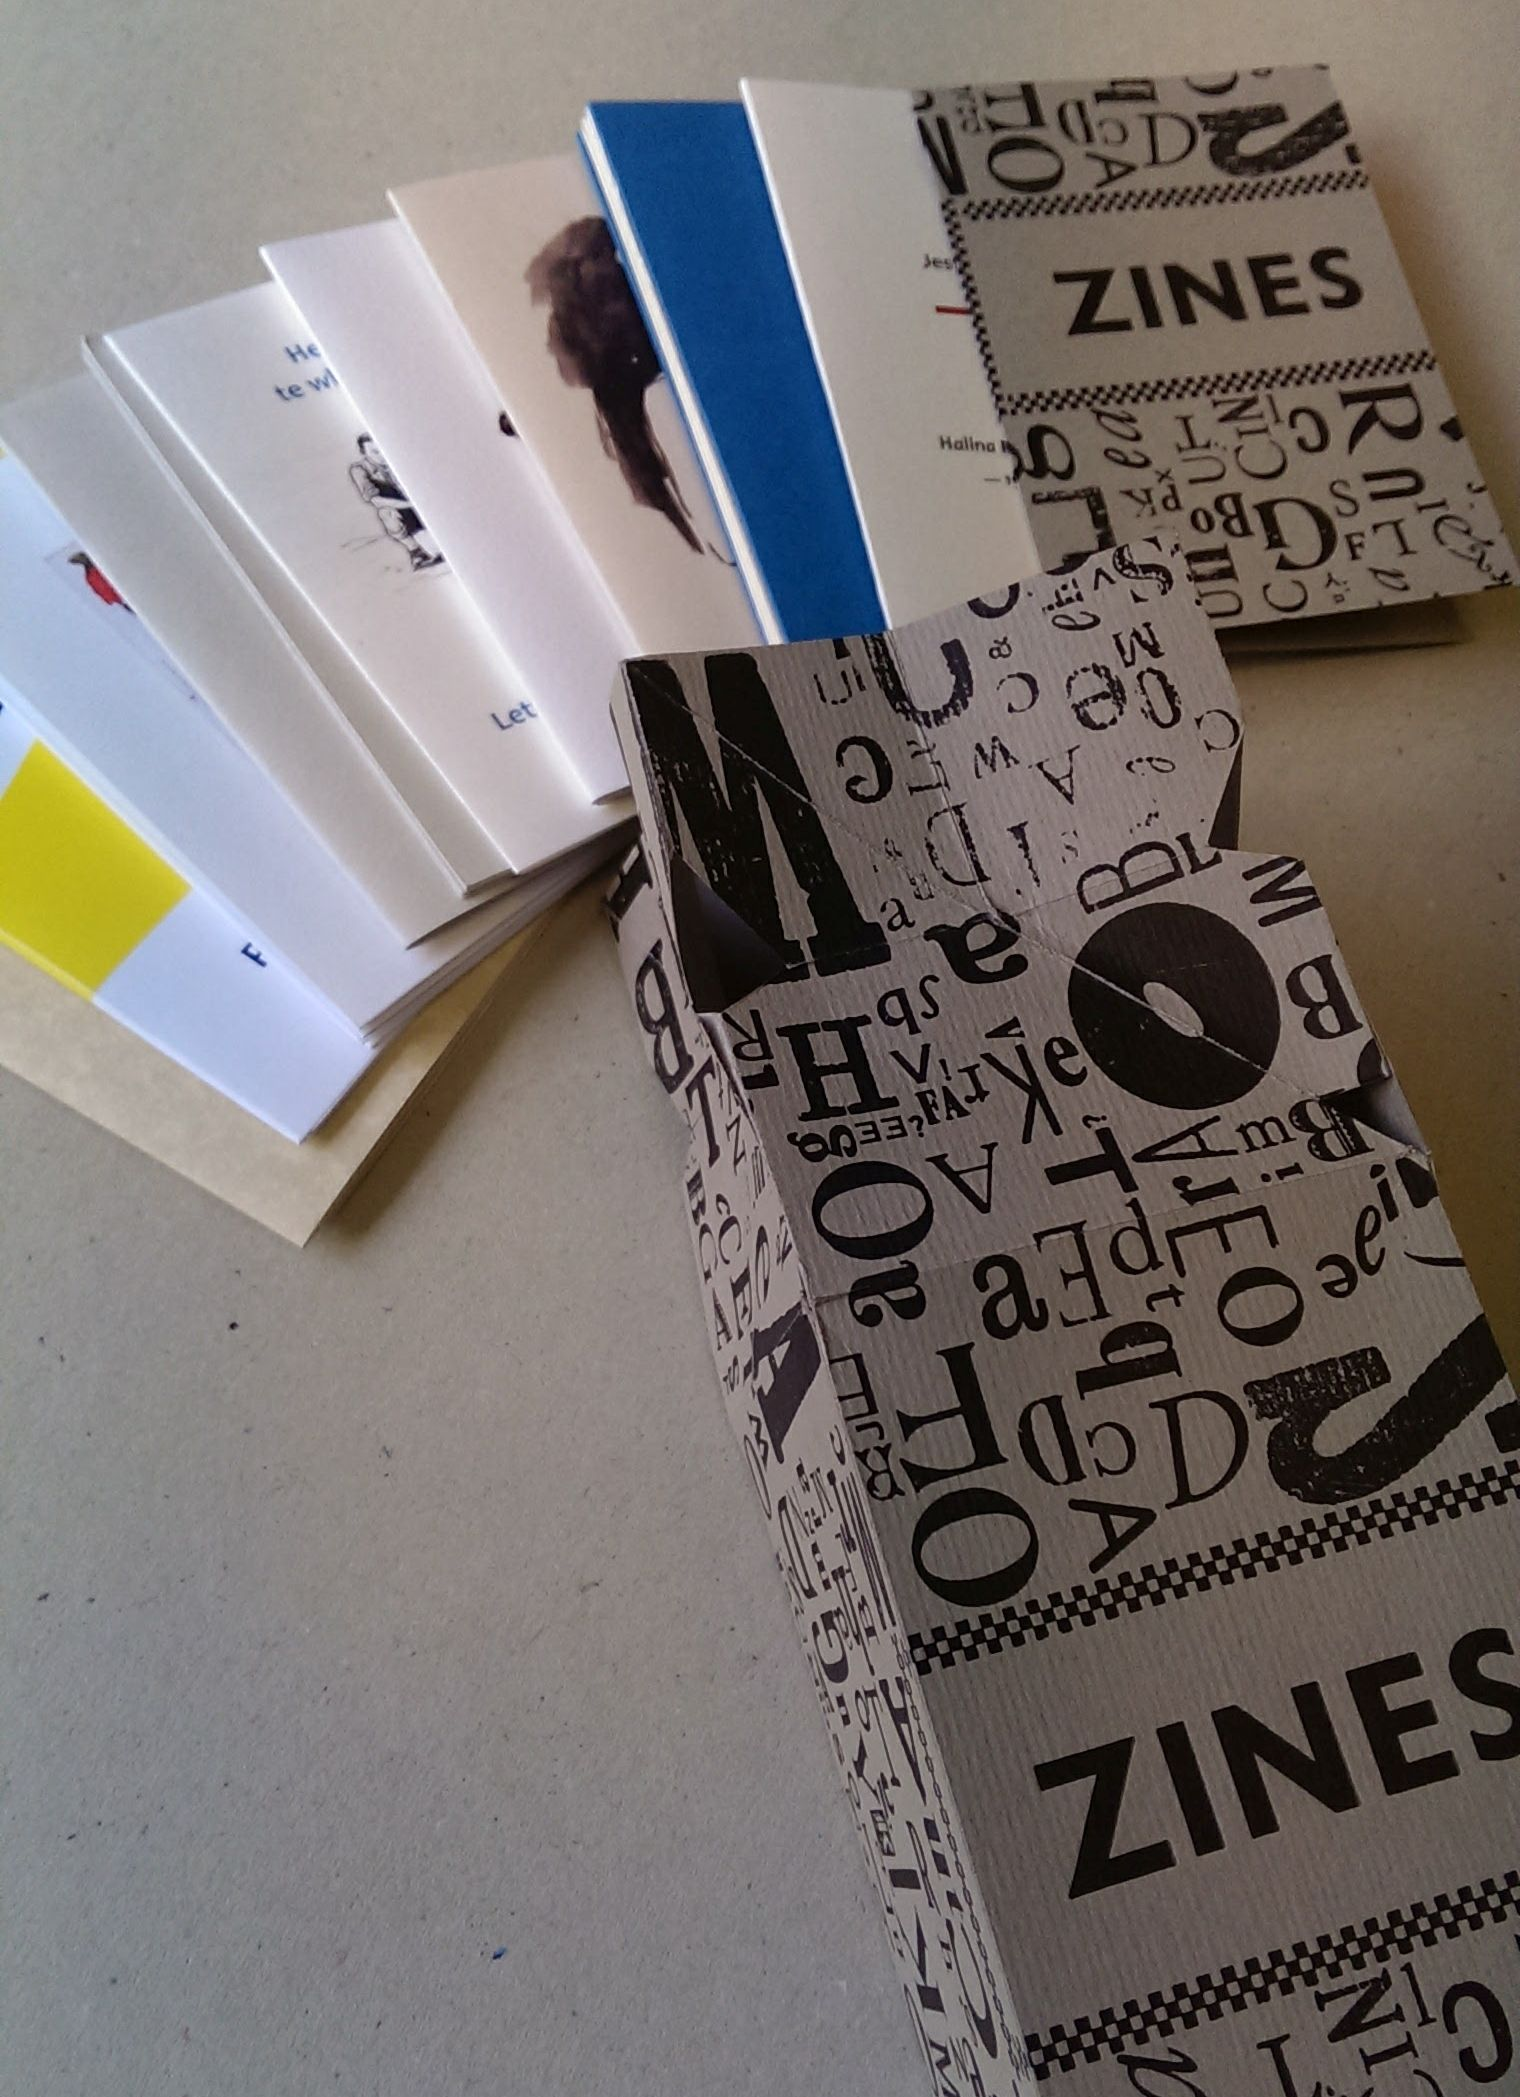 The Zine Collection box with contents spread out beside it.